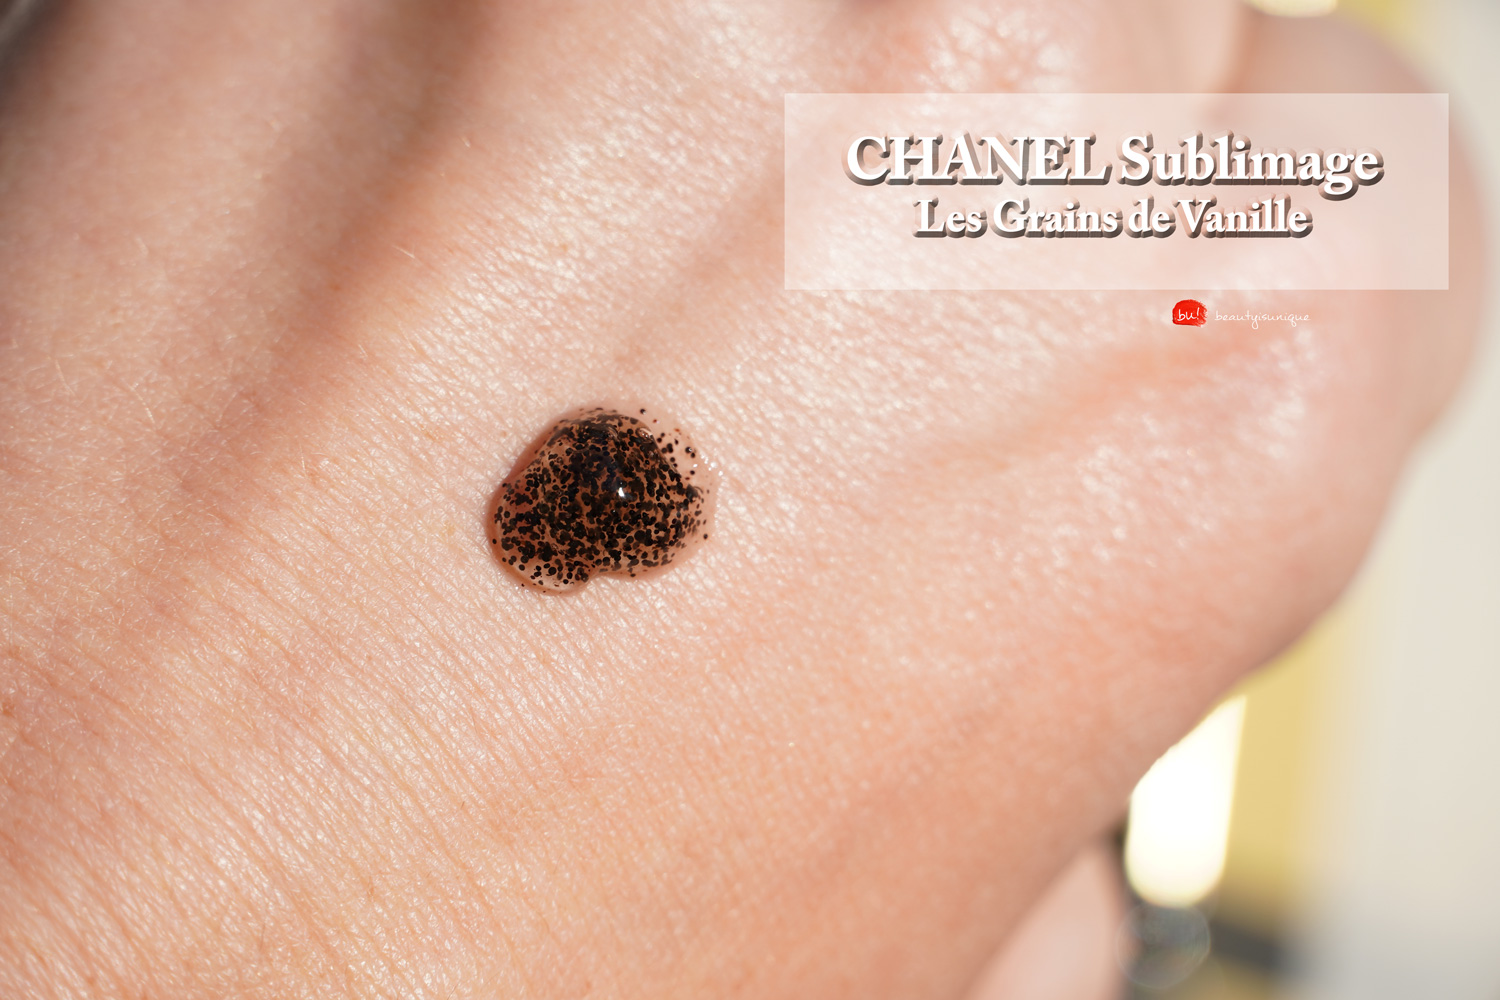 Chanel-sublimage-les-grains-de-vanille